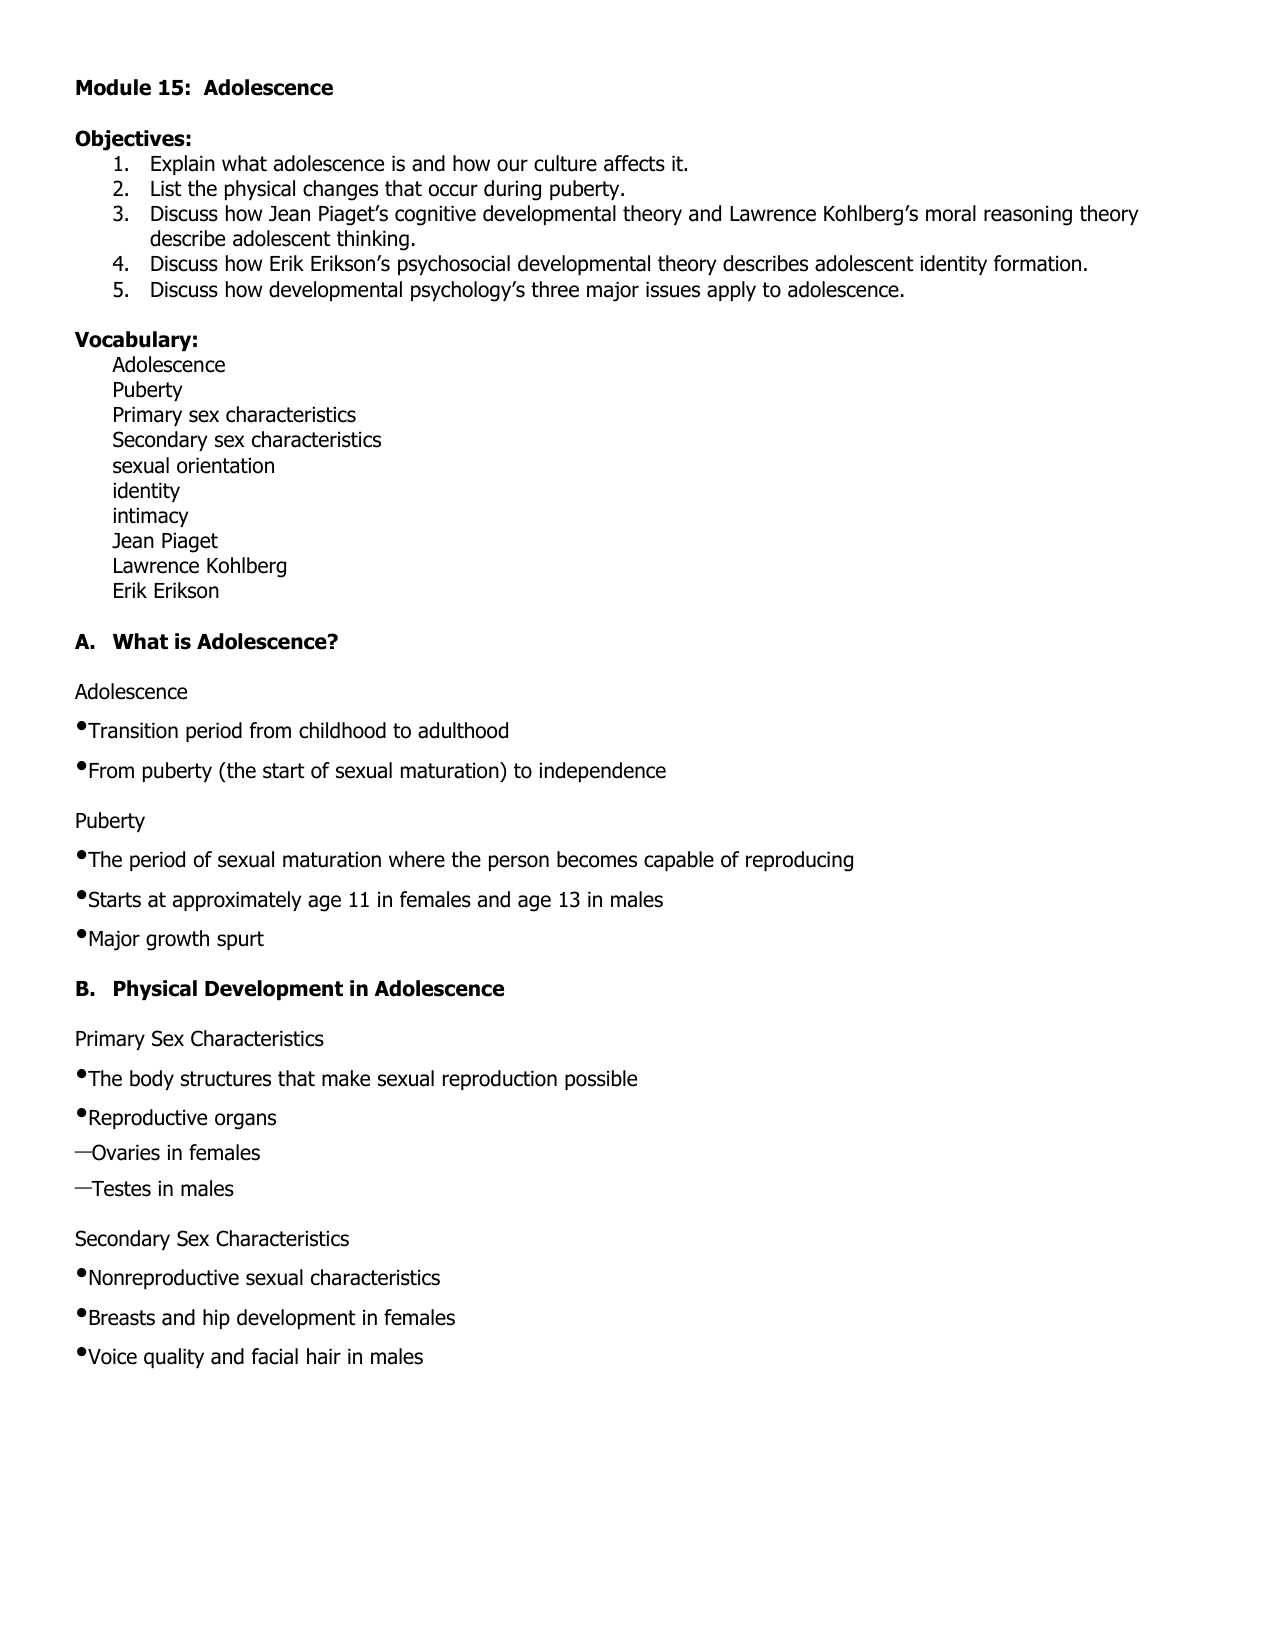 hight resolution of Module 15 Notes